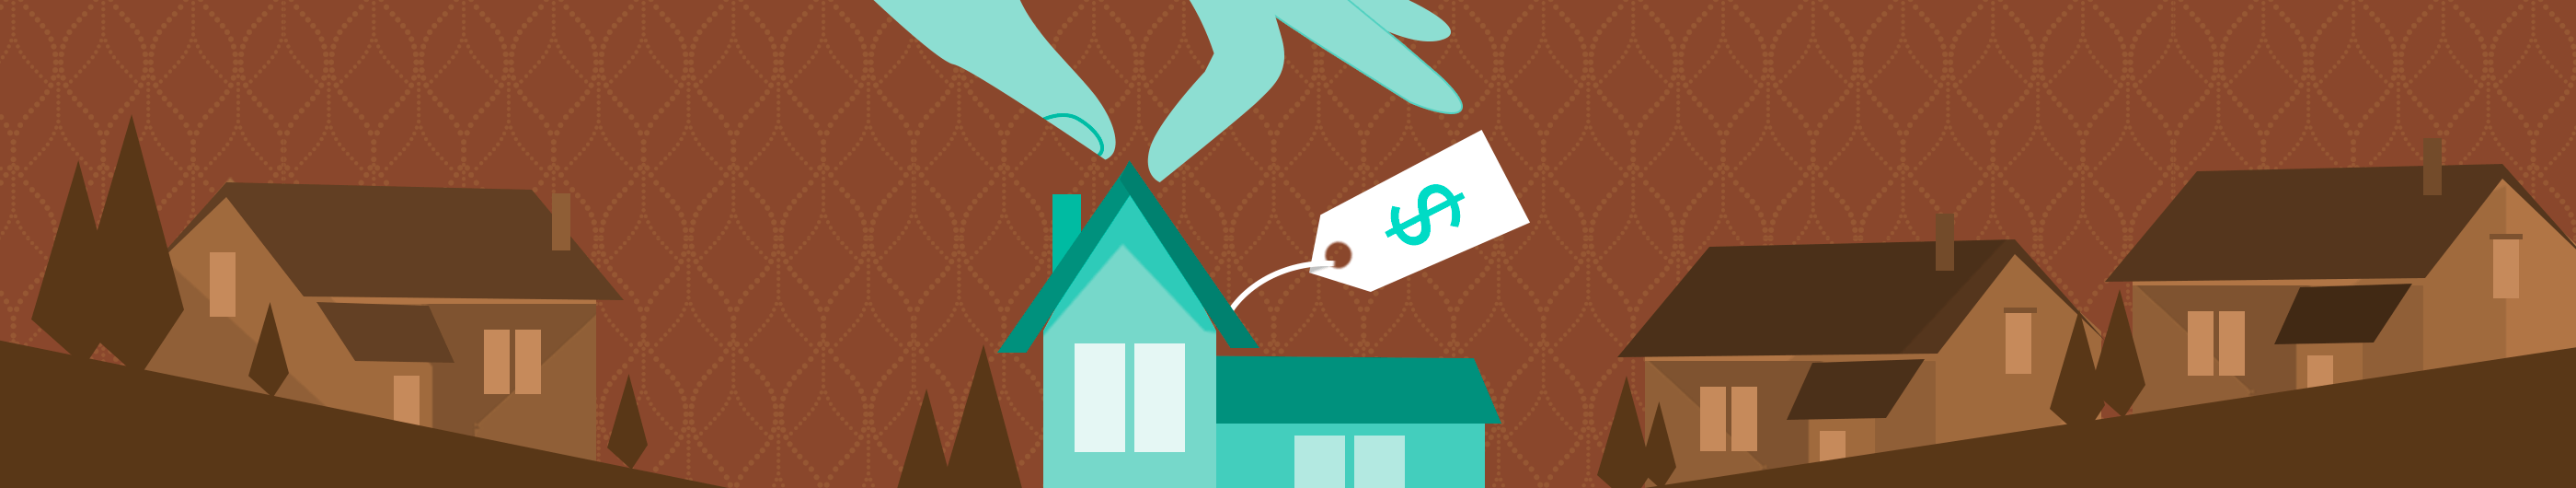 illustration of teal house with price tag